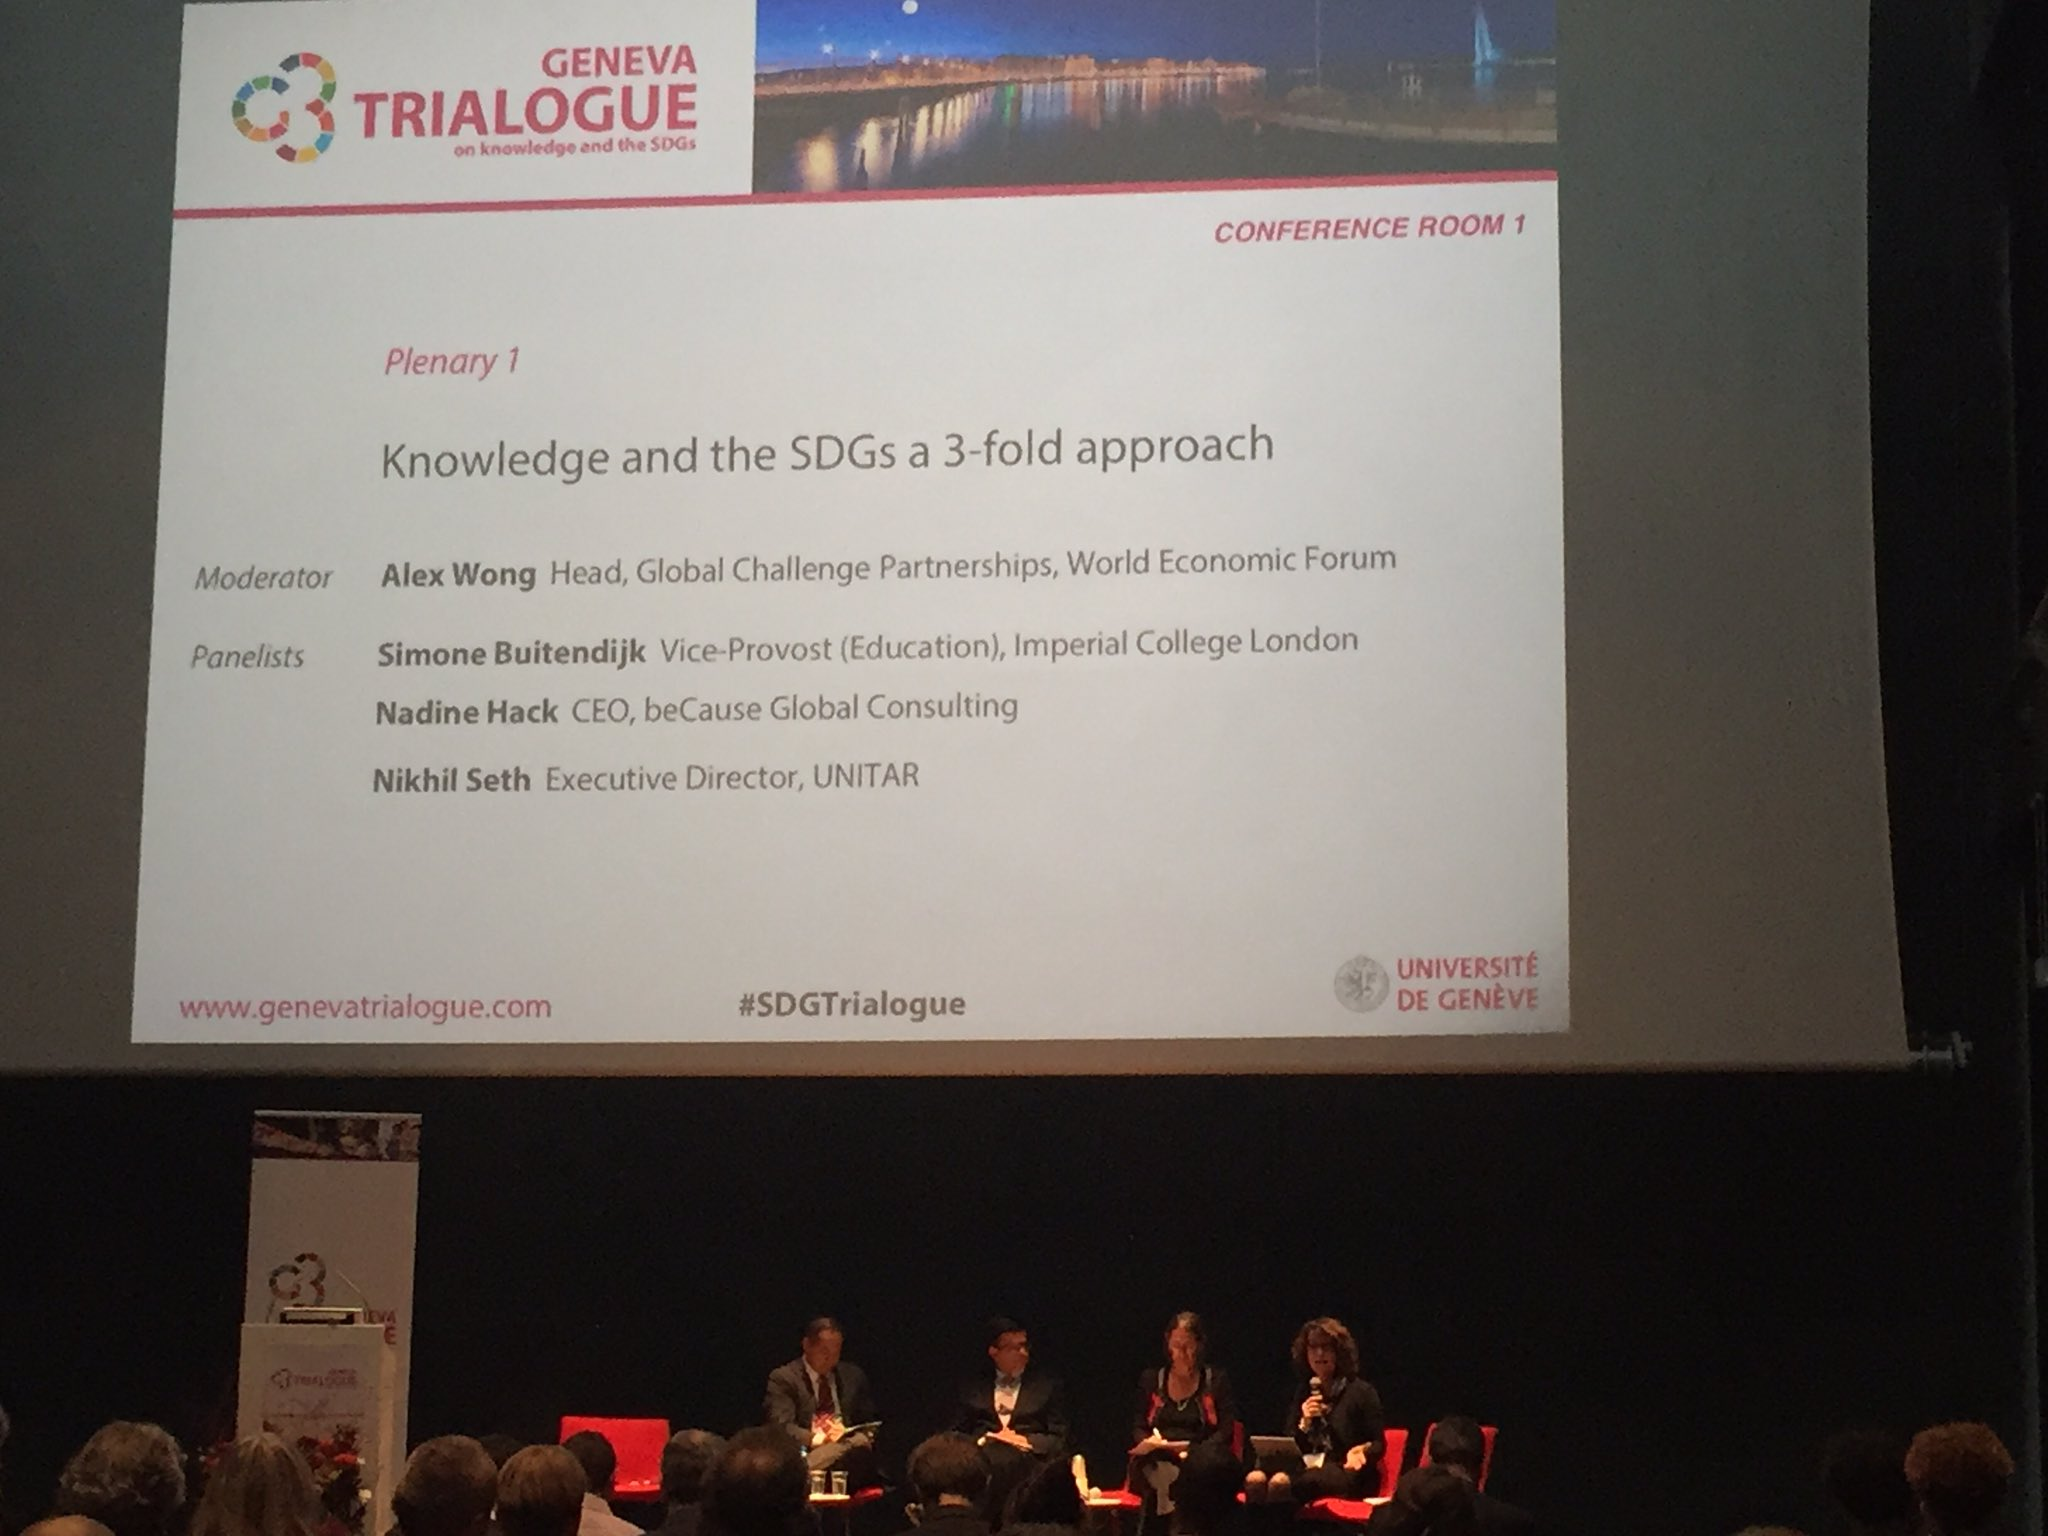 #SDGTrialogue, S. Buitendijk (ICL) about the wrong competitive priorities set by Universities instead of sustainable solutions and education https://t.co/KzUdaROae8